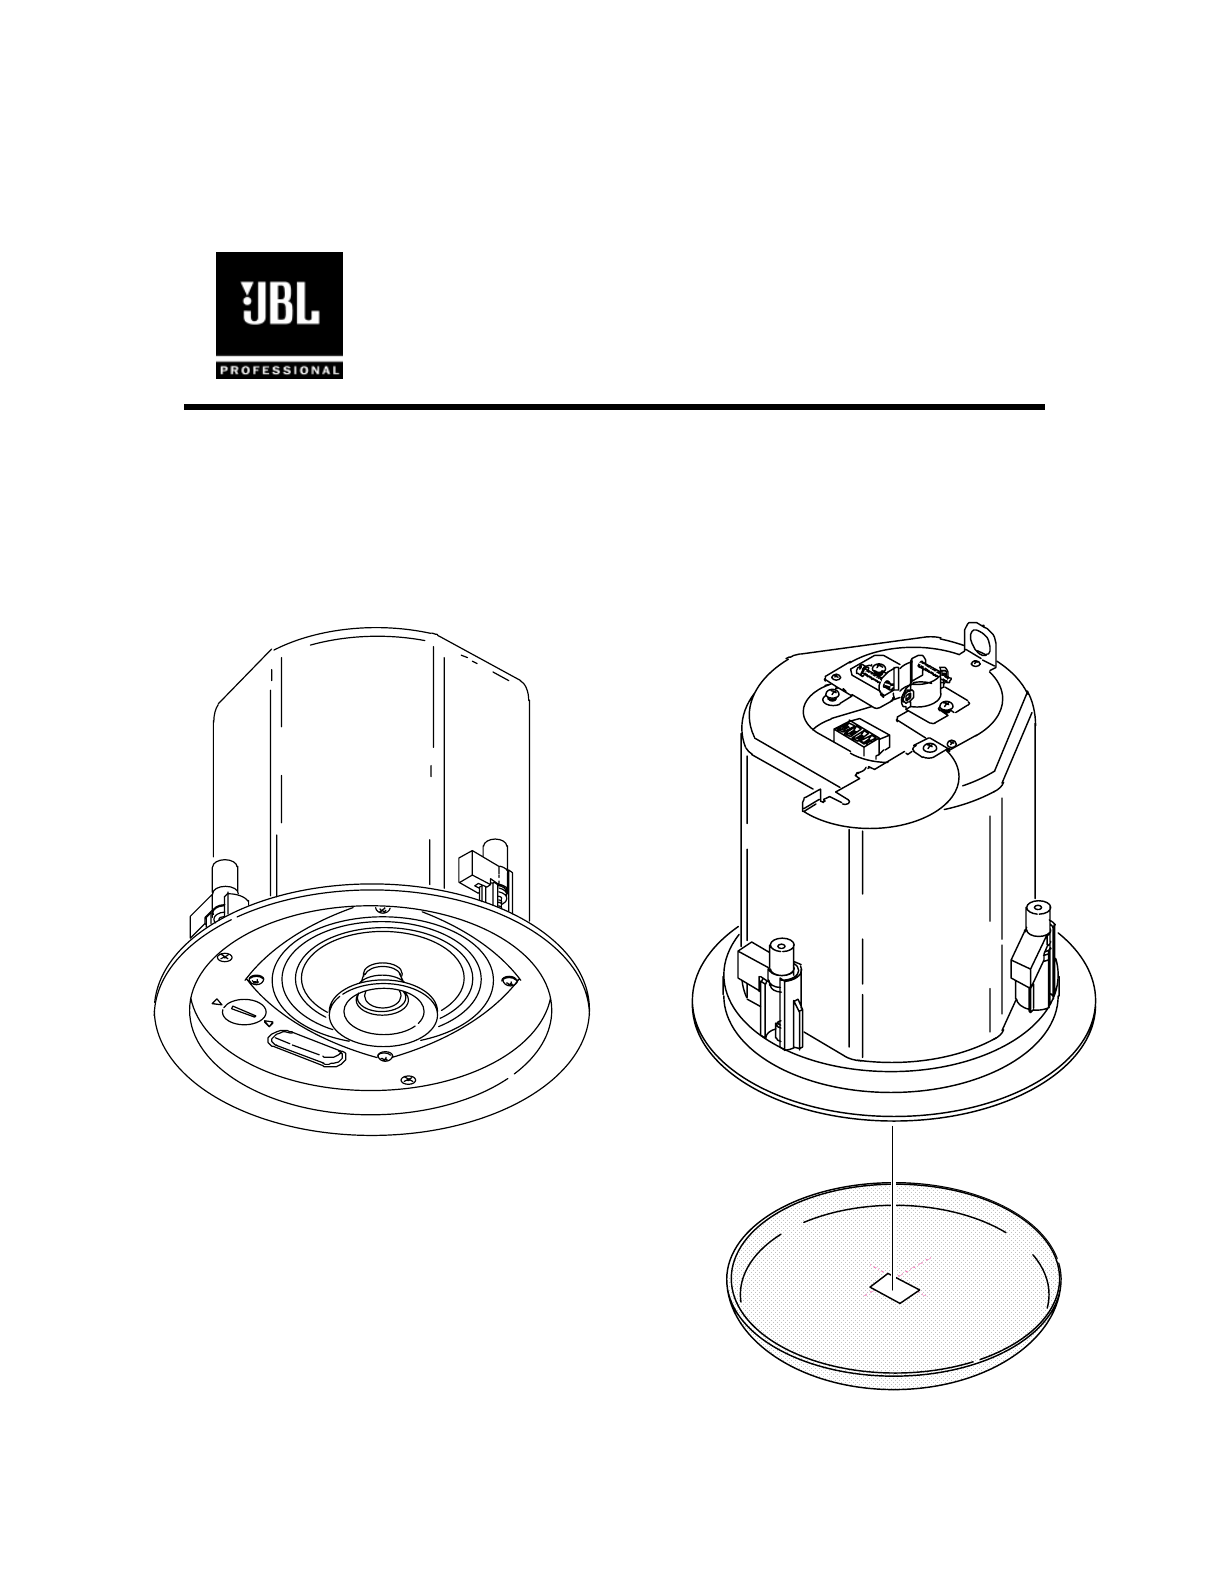 Jbl Ceiling Speaker Owners Manual Text Control Contractor